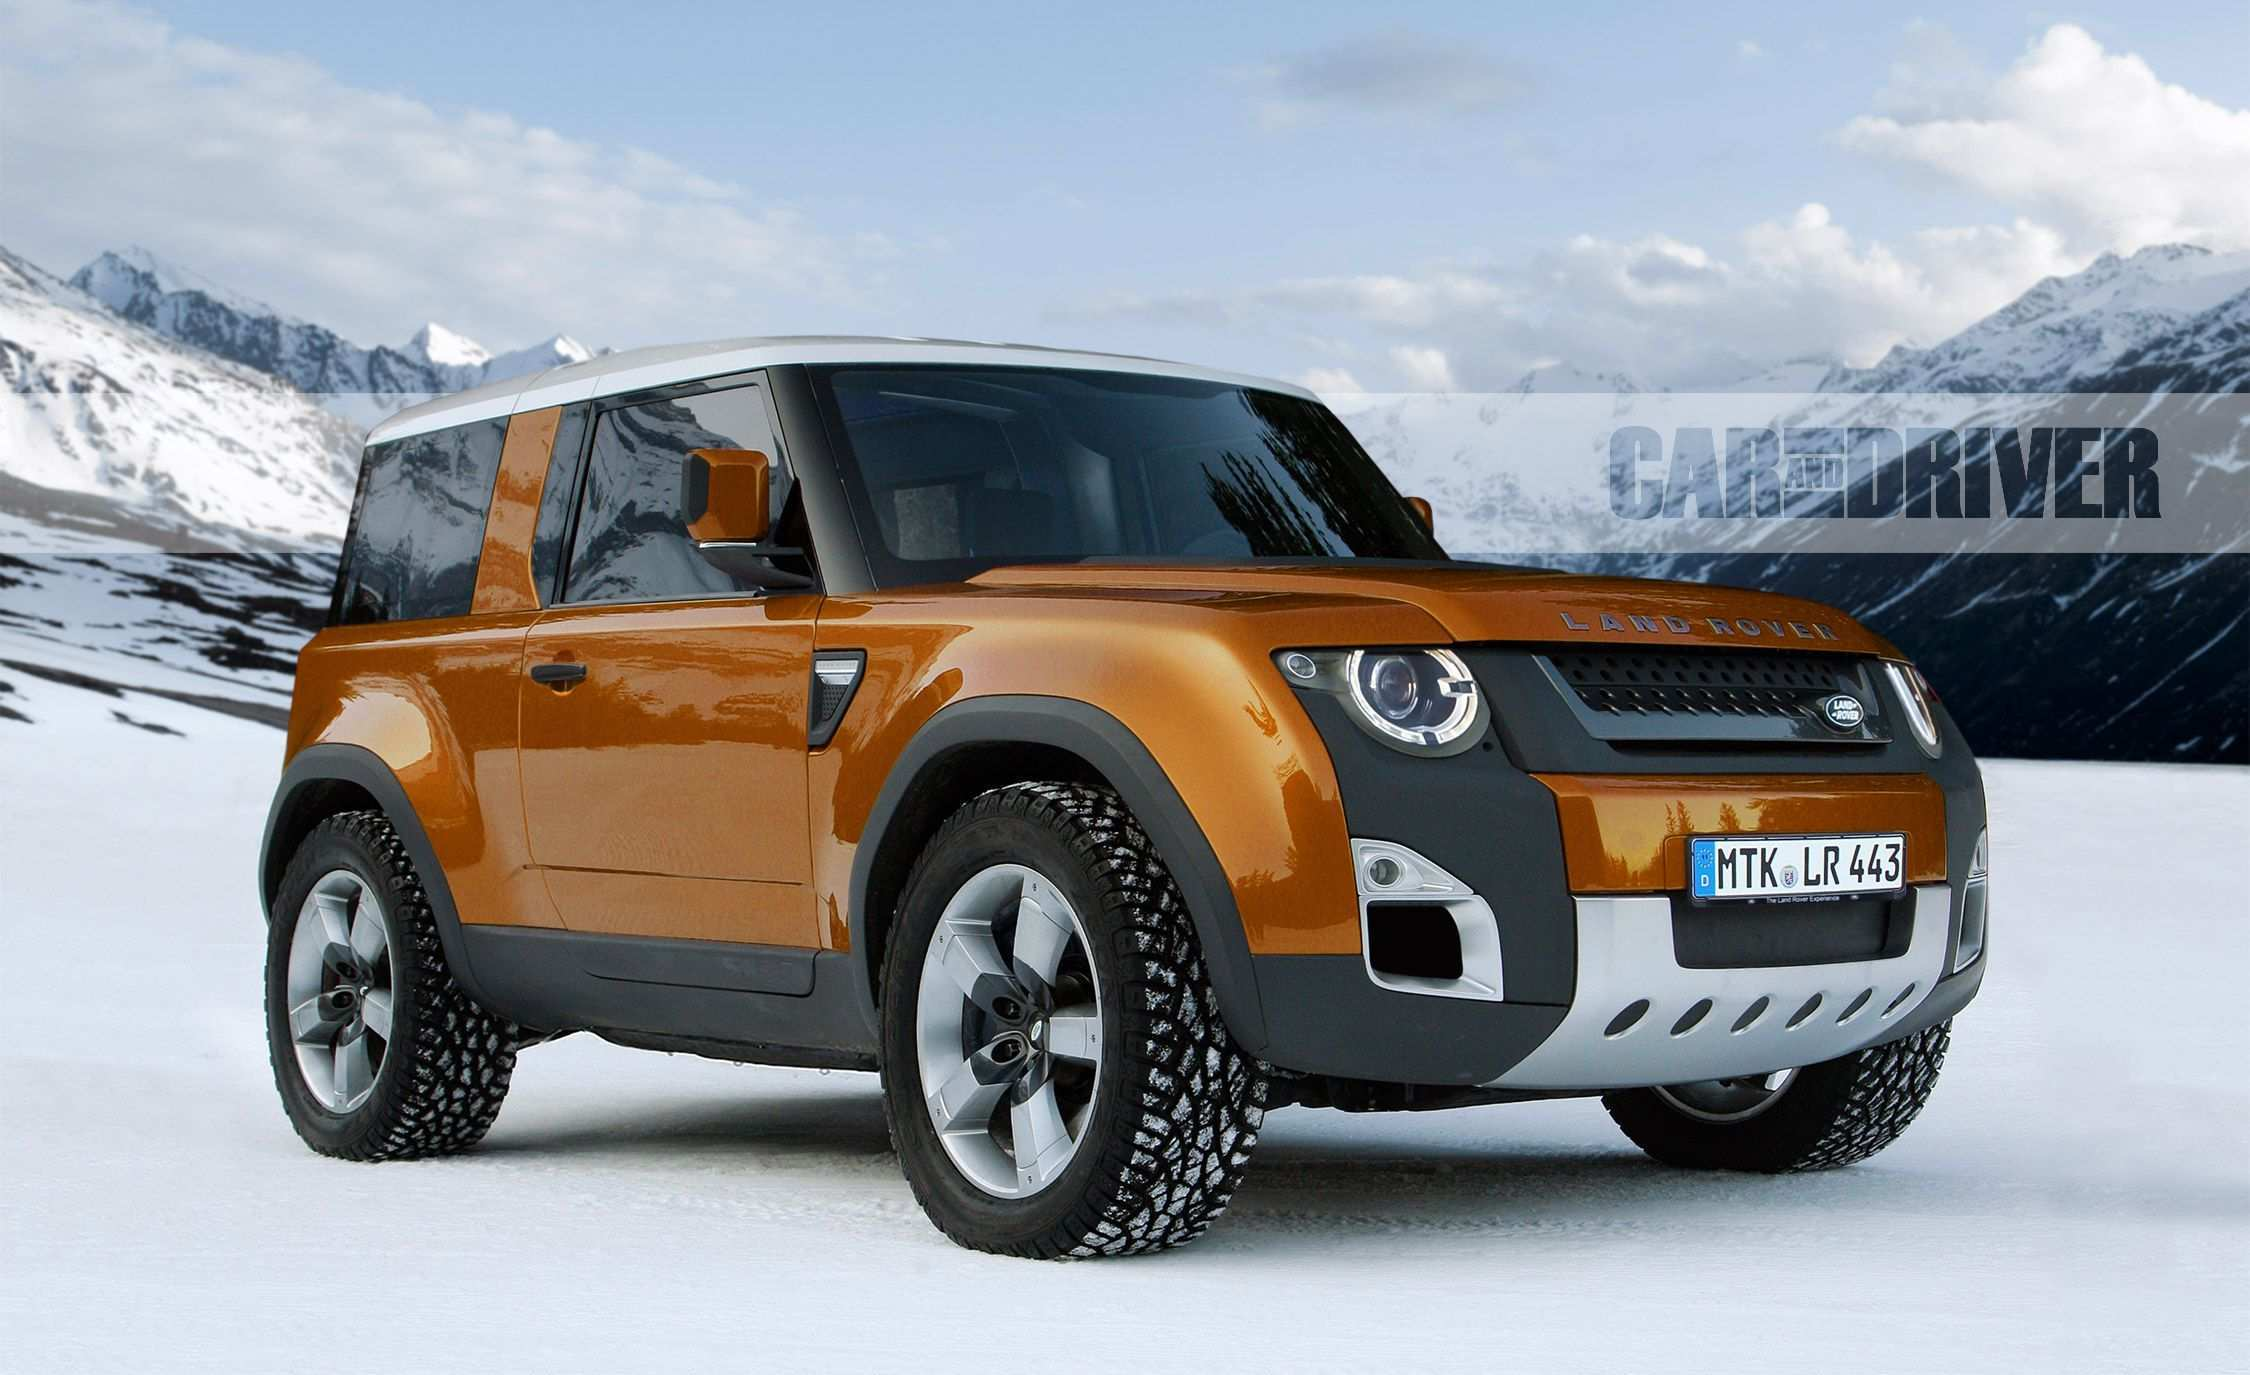 97 Best Review New Land Rover Defender 2020 Model by New Land Rover Defender 2020